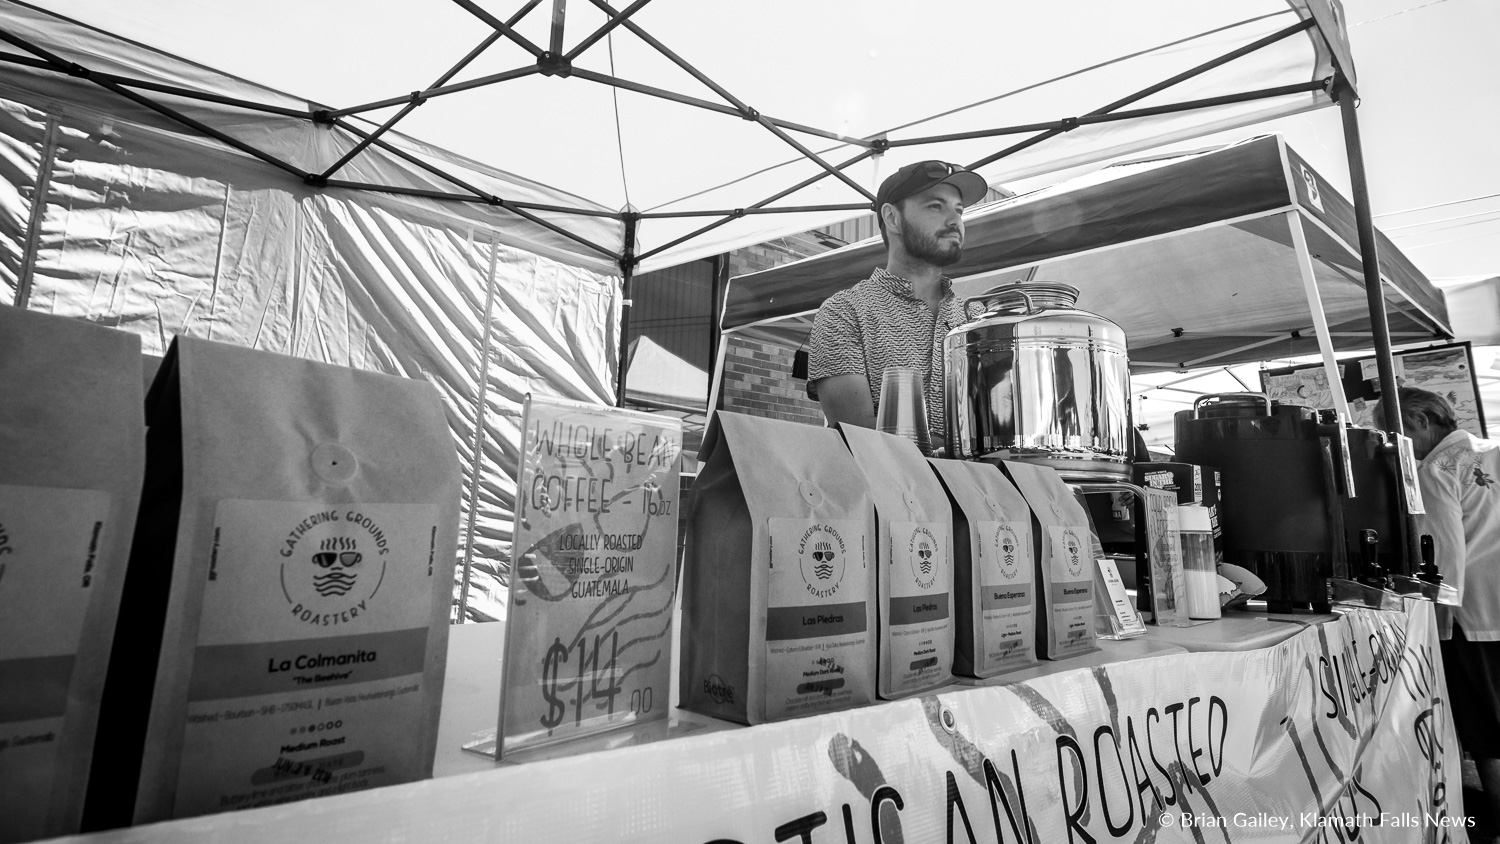 Jason Aarstad, Owner of Gathering Grounds Roastery offers locally roasted coffee at the Klamath Falls Farmers' Market.  Aarstad also has a cafe located just down the street from the market. June 30, 2018 (Brian Gailey)